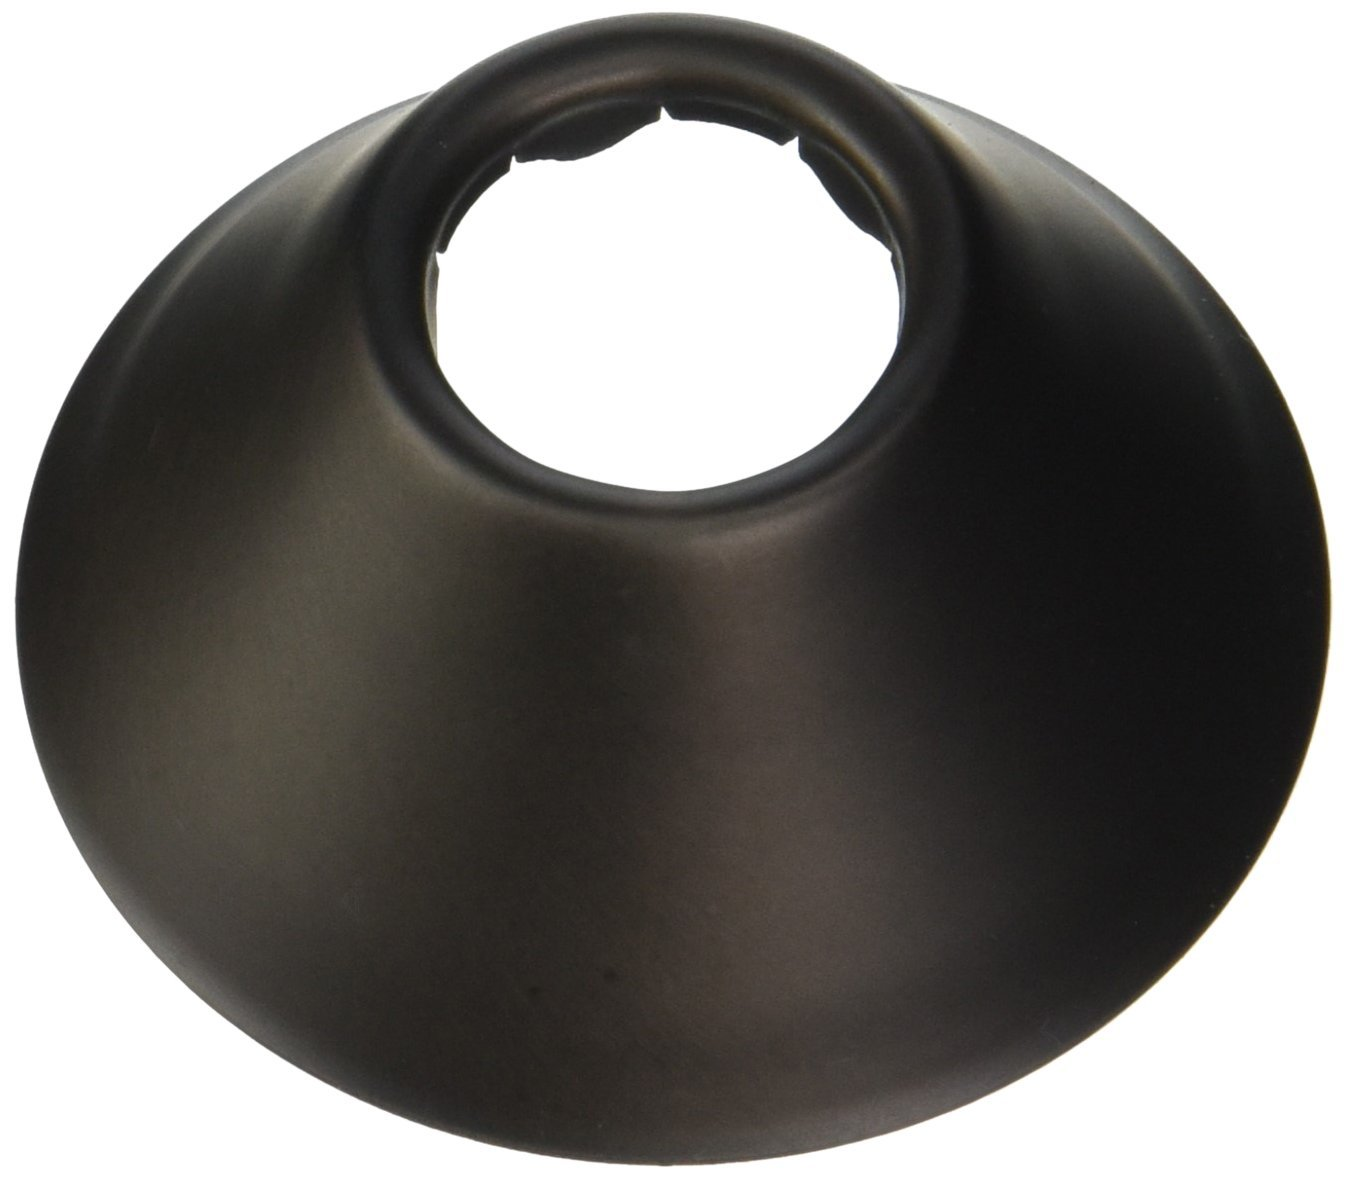 Kingston Brass FLBELL125 Nuvofusion 1/2-Inch IPS Bell Flange, Oil Rubbed Bronze